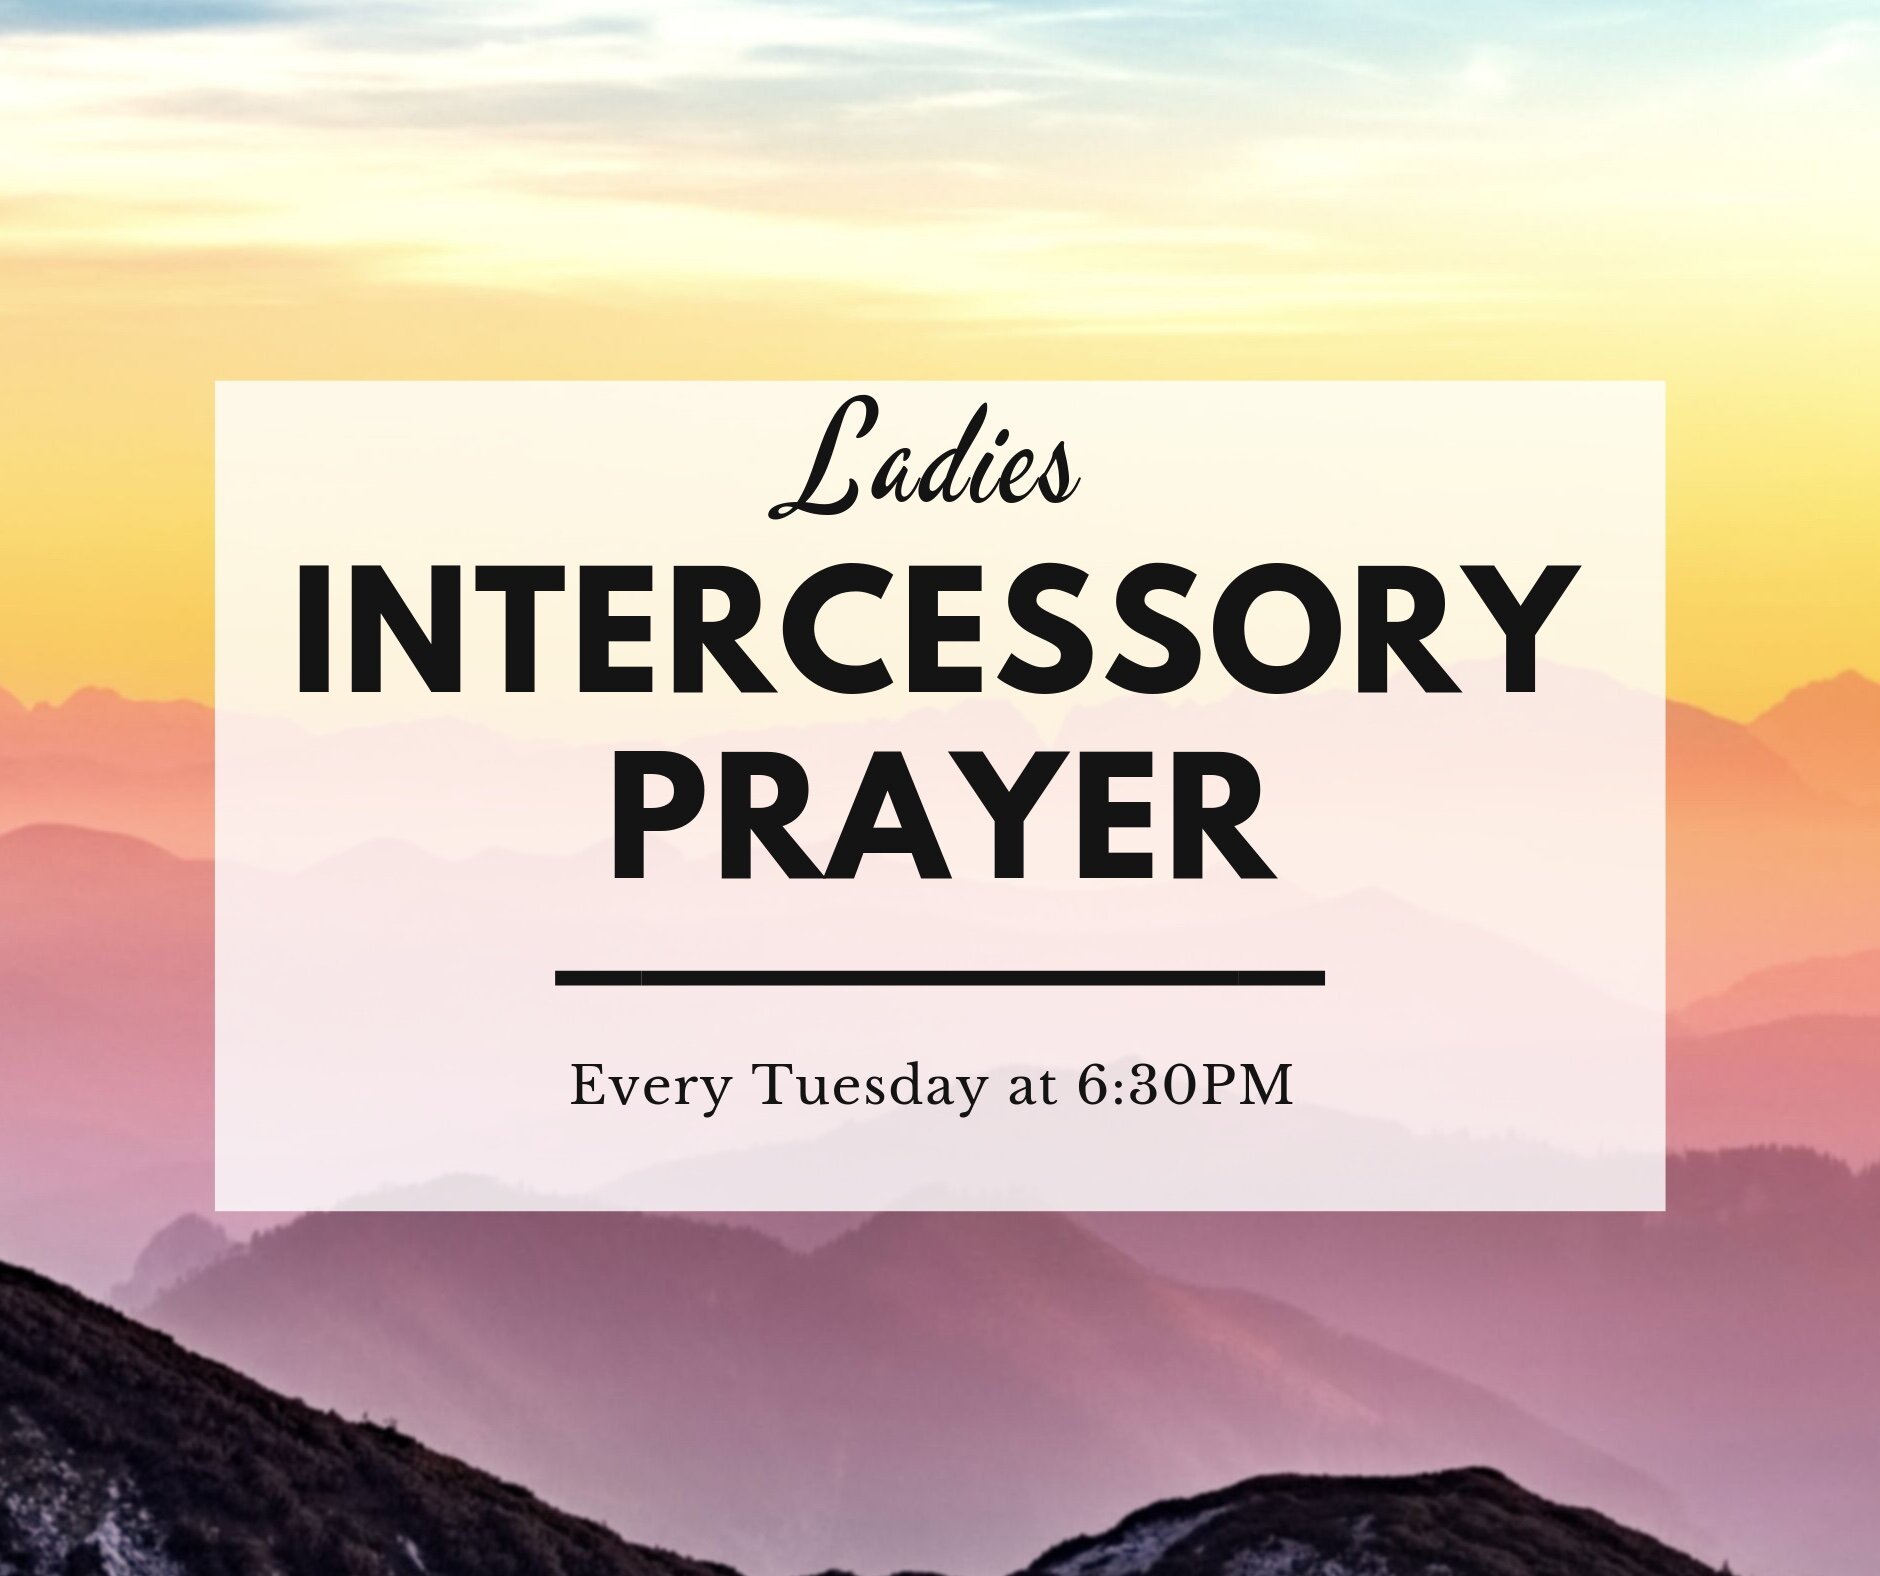 Every Tuesday night at 6:30PM, the women of Lakeshore come together to lift up the needs of the church in prayer. Join them for this powerful time in the presence of the Lord and see how God responds to the prayers of His children.